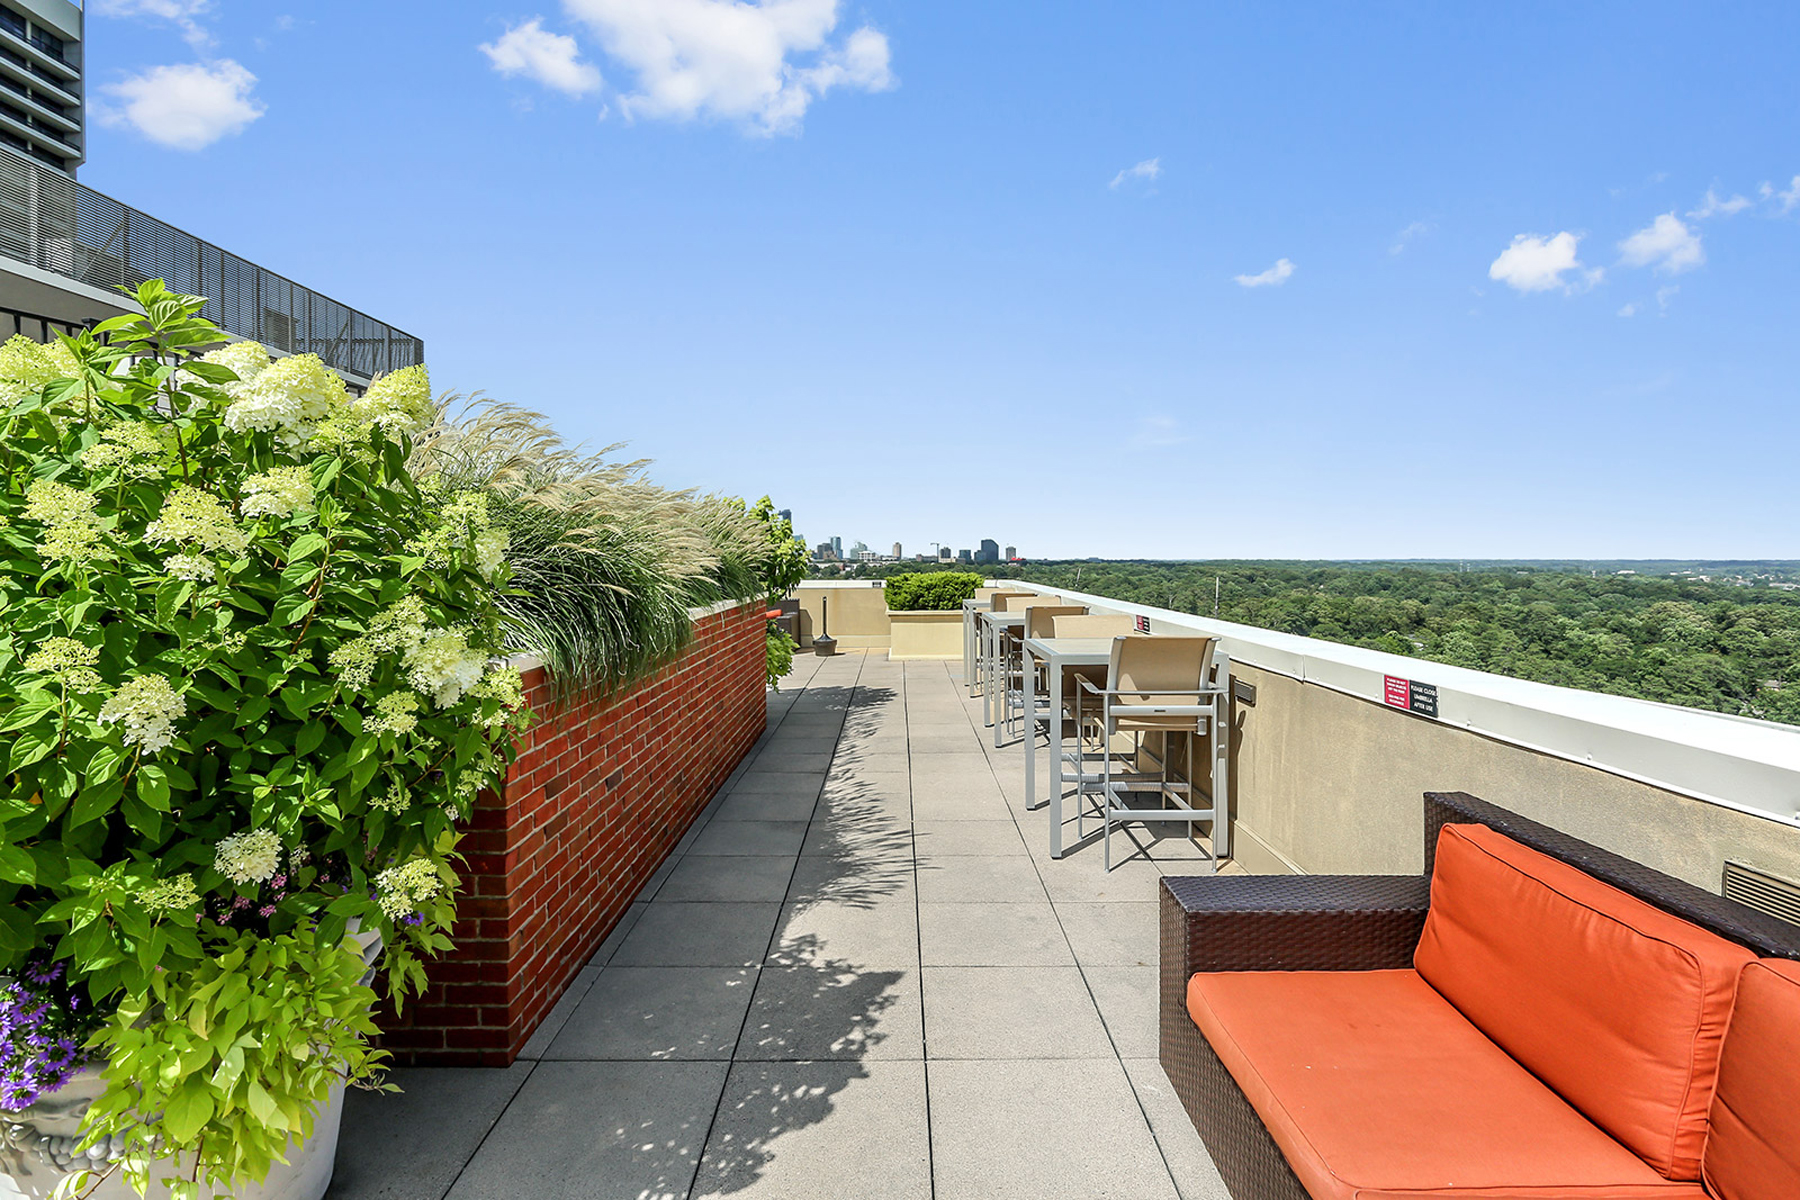 Additional photo for property listing at Downtown Views From Buckhead High Rise 2626 Peachtree Road NW Unit 1403 Atlanta, Georgia 30305 United States